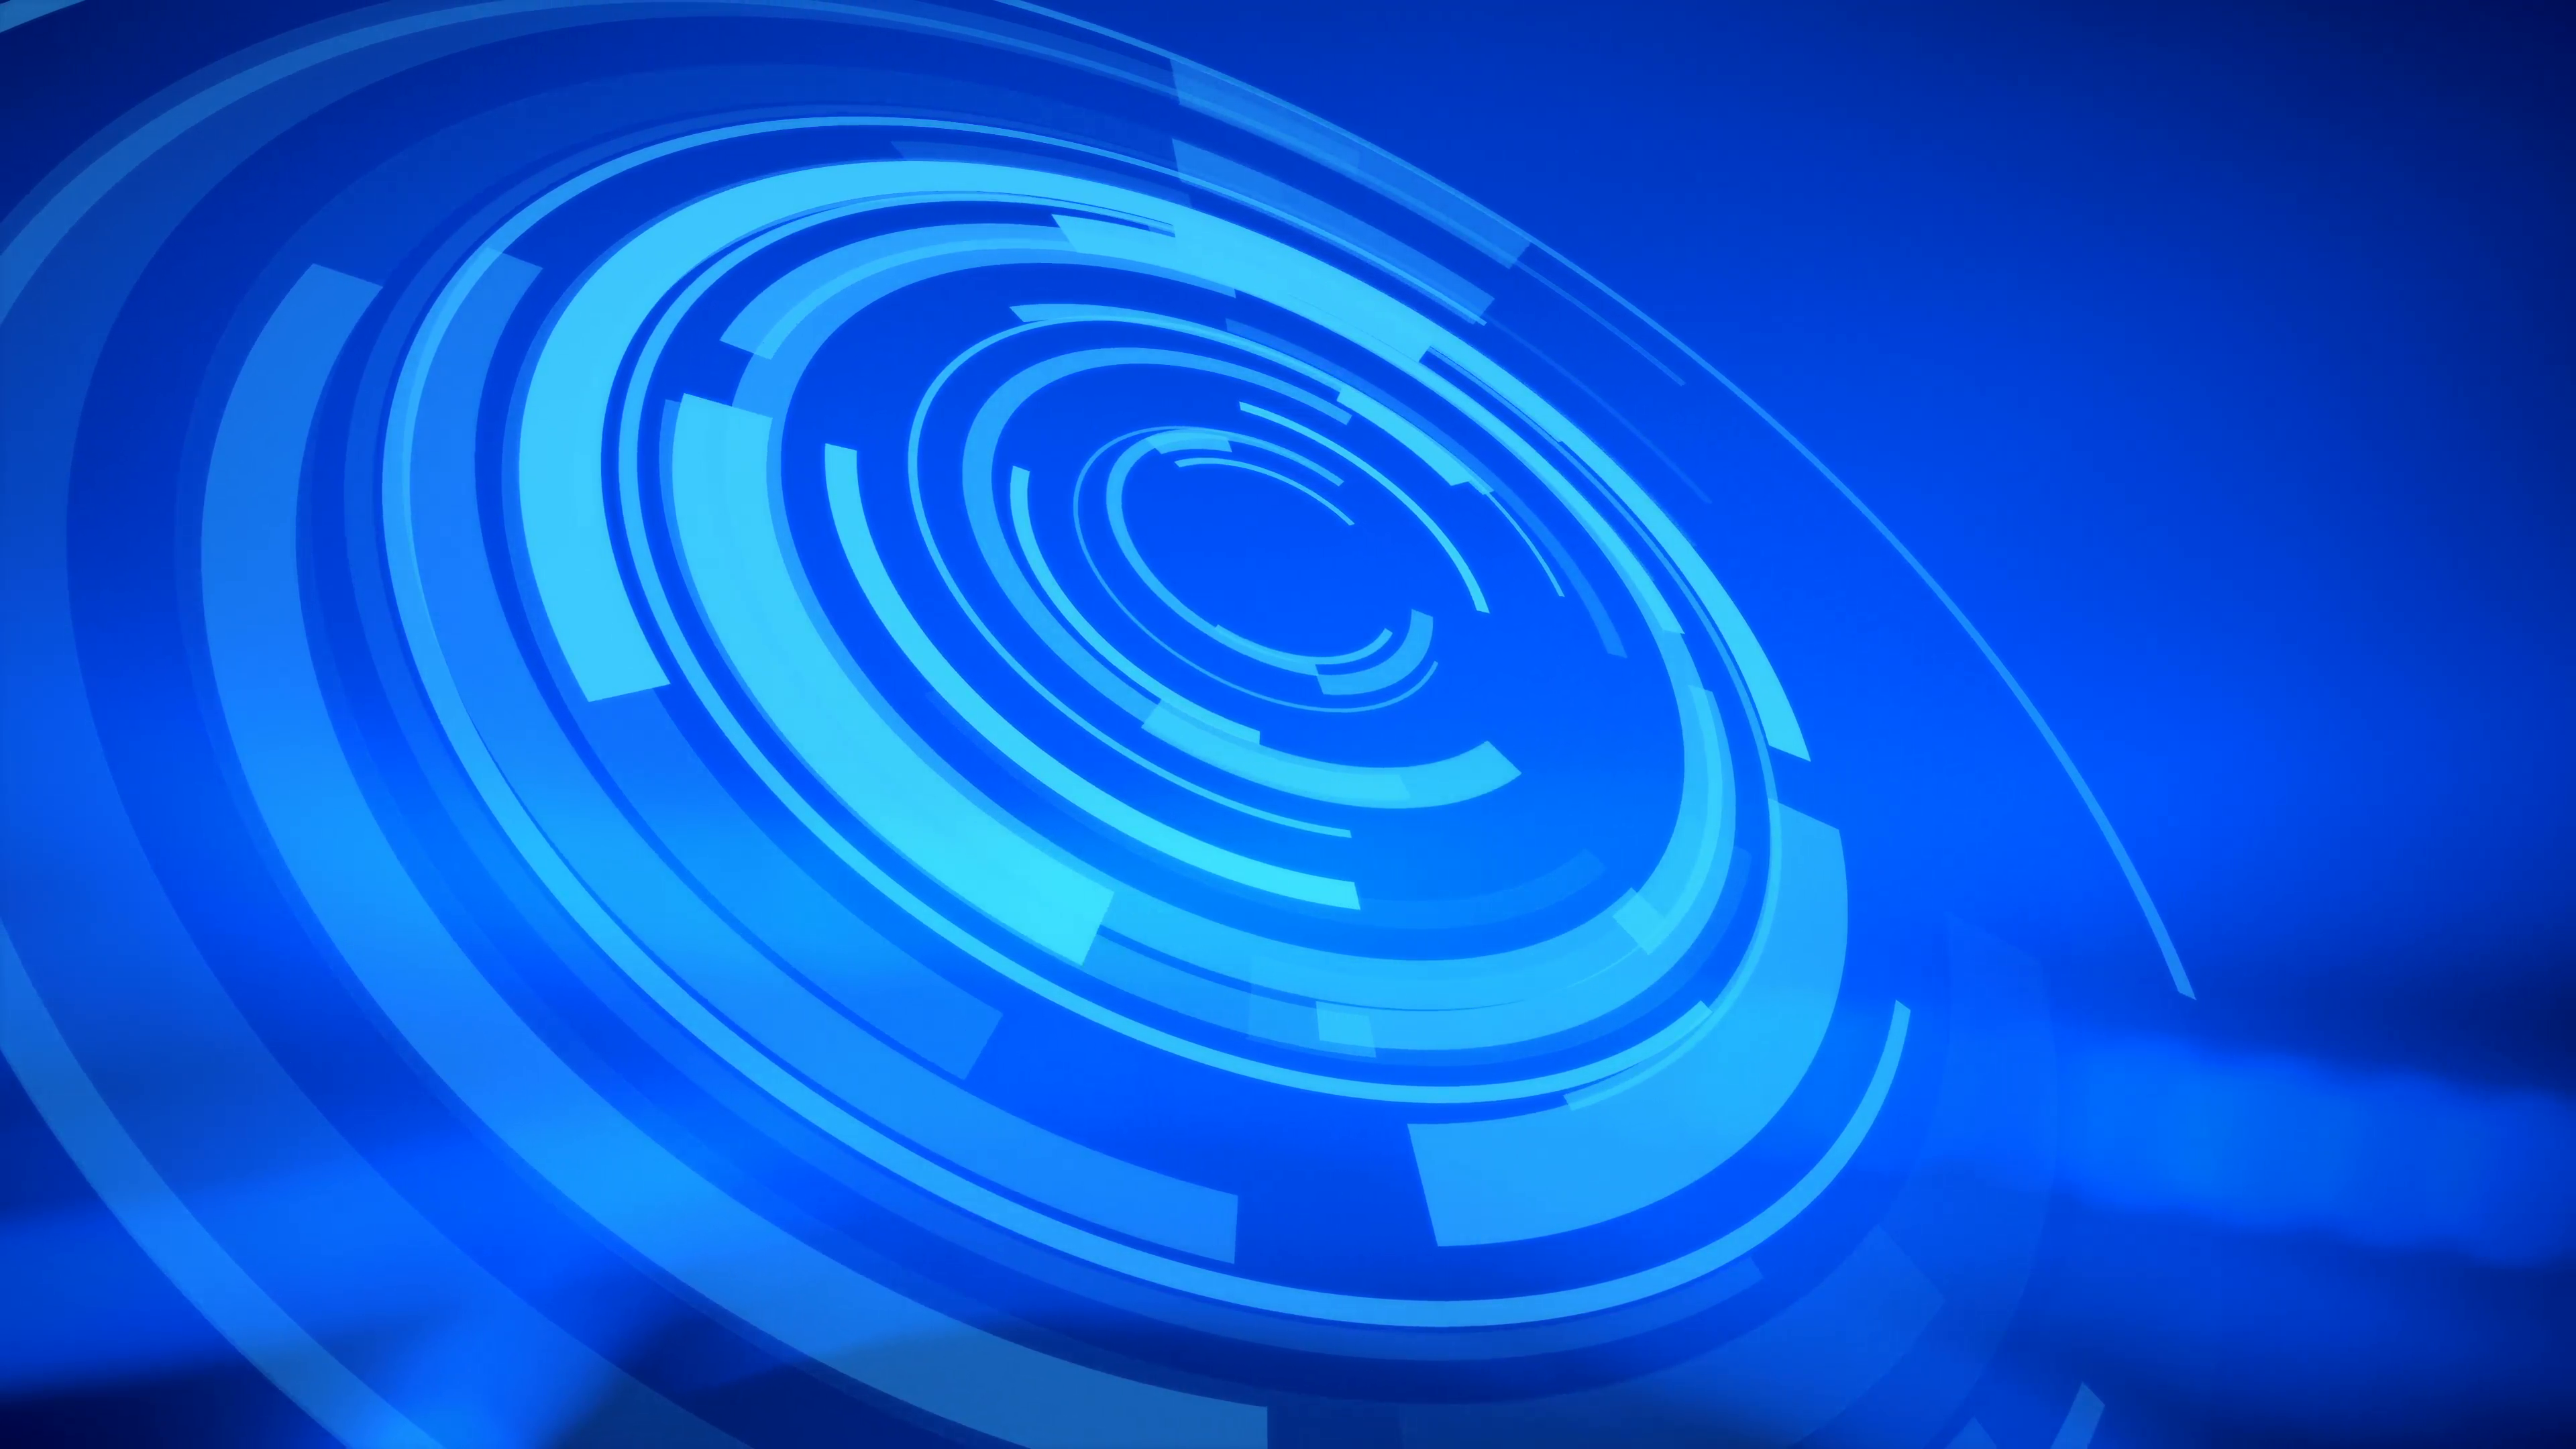 Free Photo: Blue Abstract Background